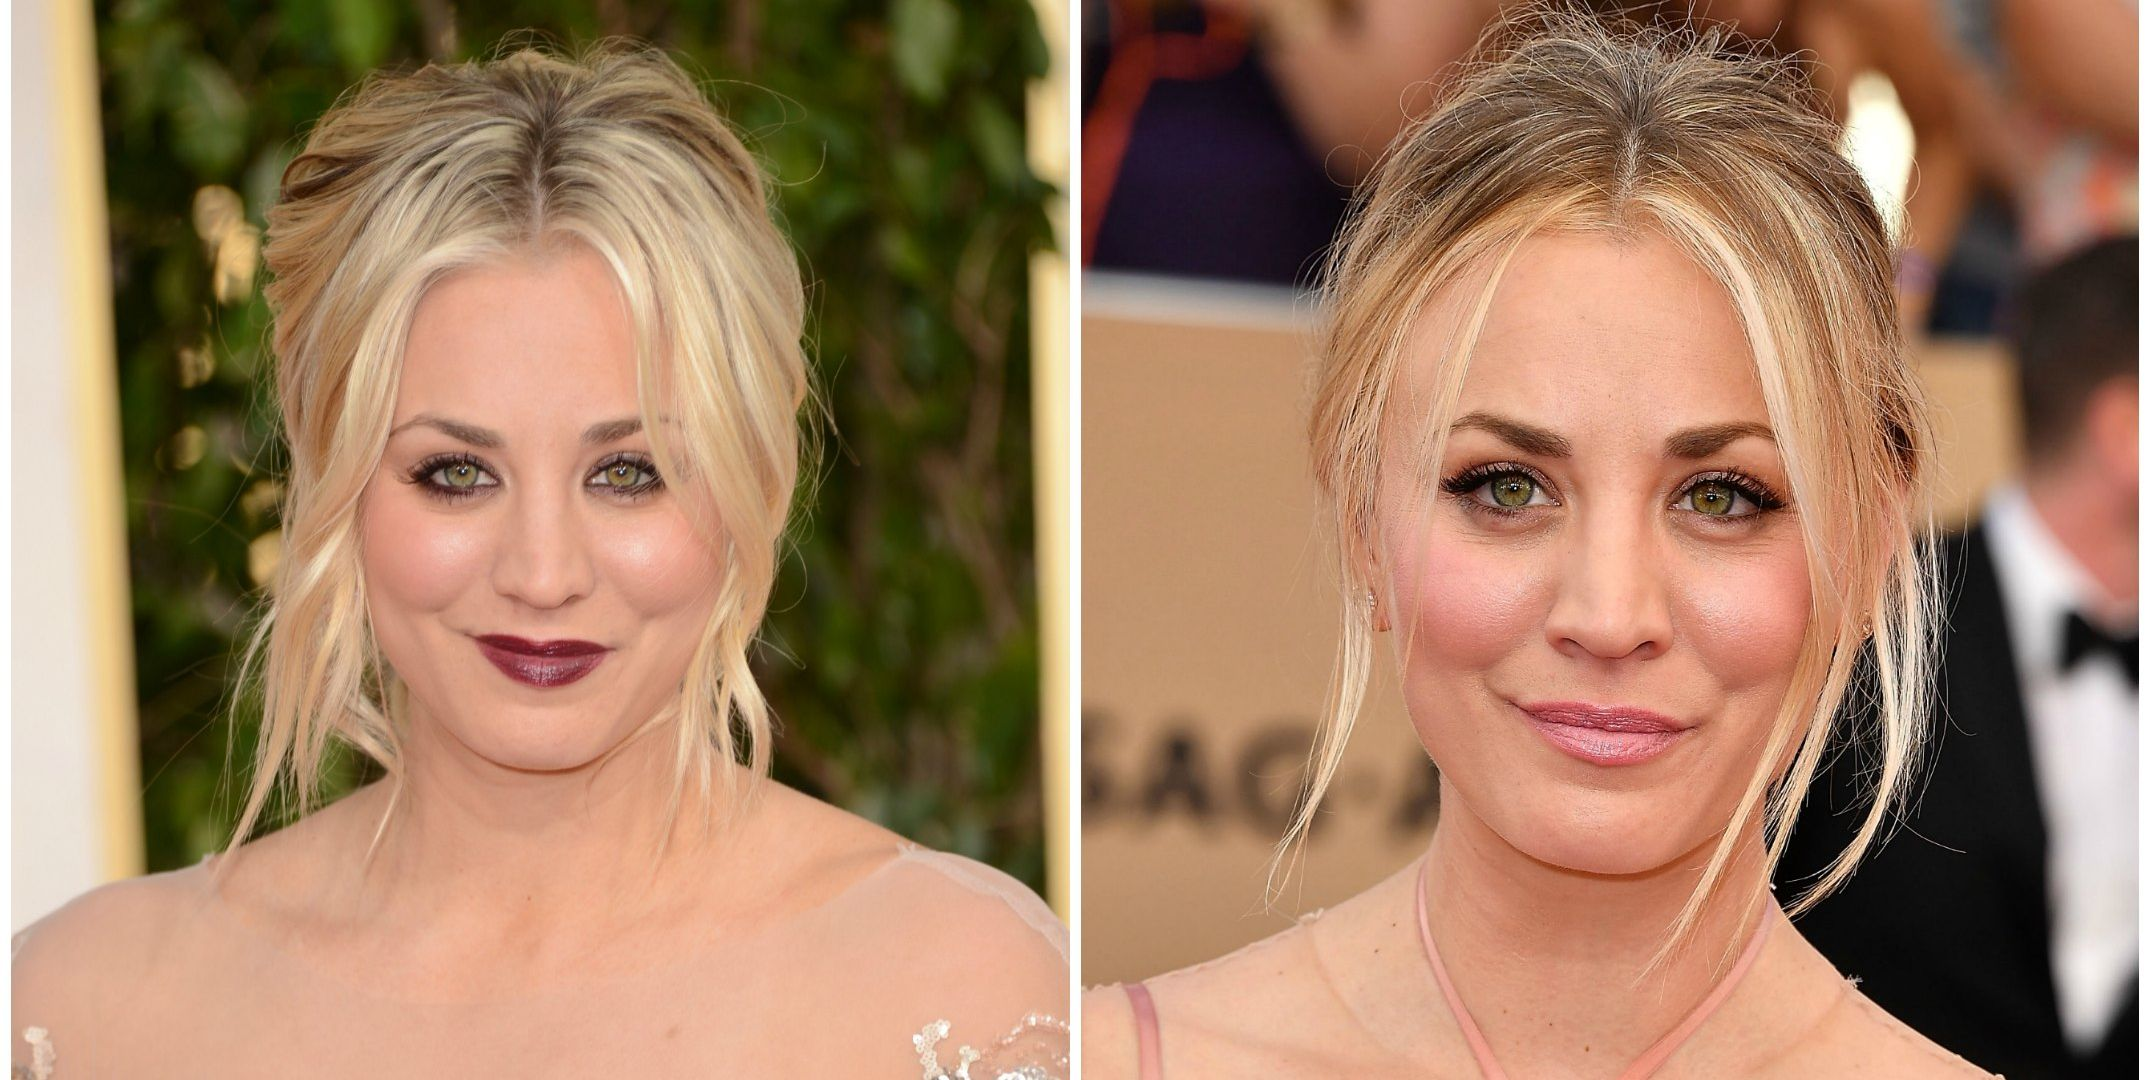 Kaley Cuoco Kaley has never really gone too over-the-top with her makeup, but there's a reason she often plays the girl next door on TV: she doesn't need rimmed liner and dark lips to look A+.